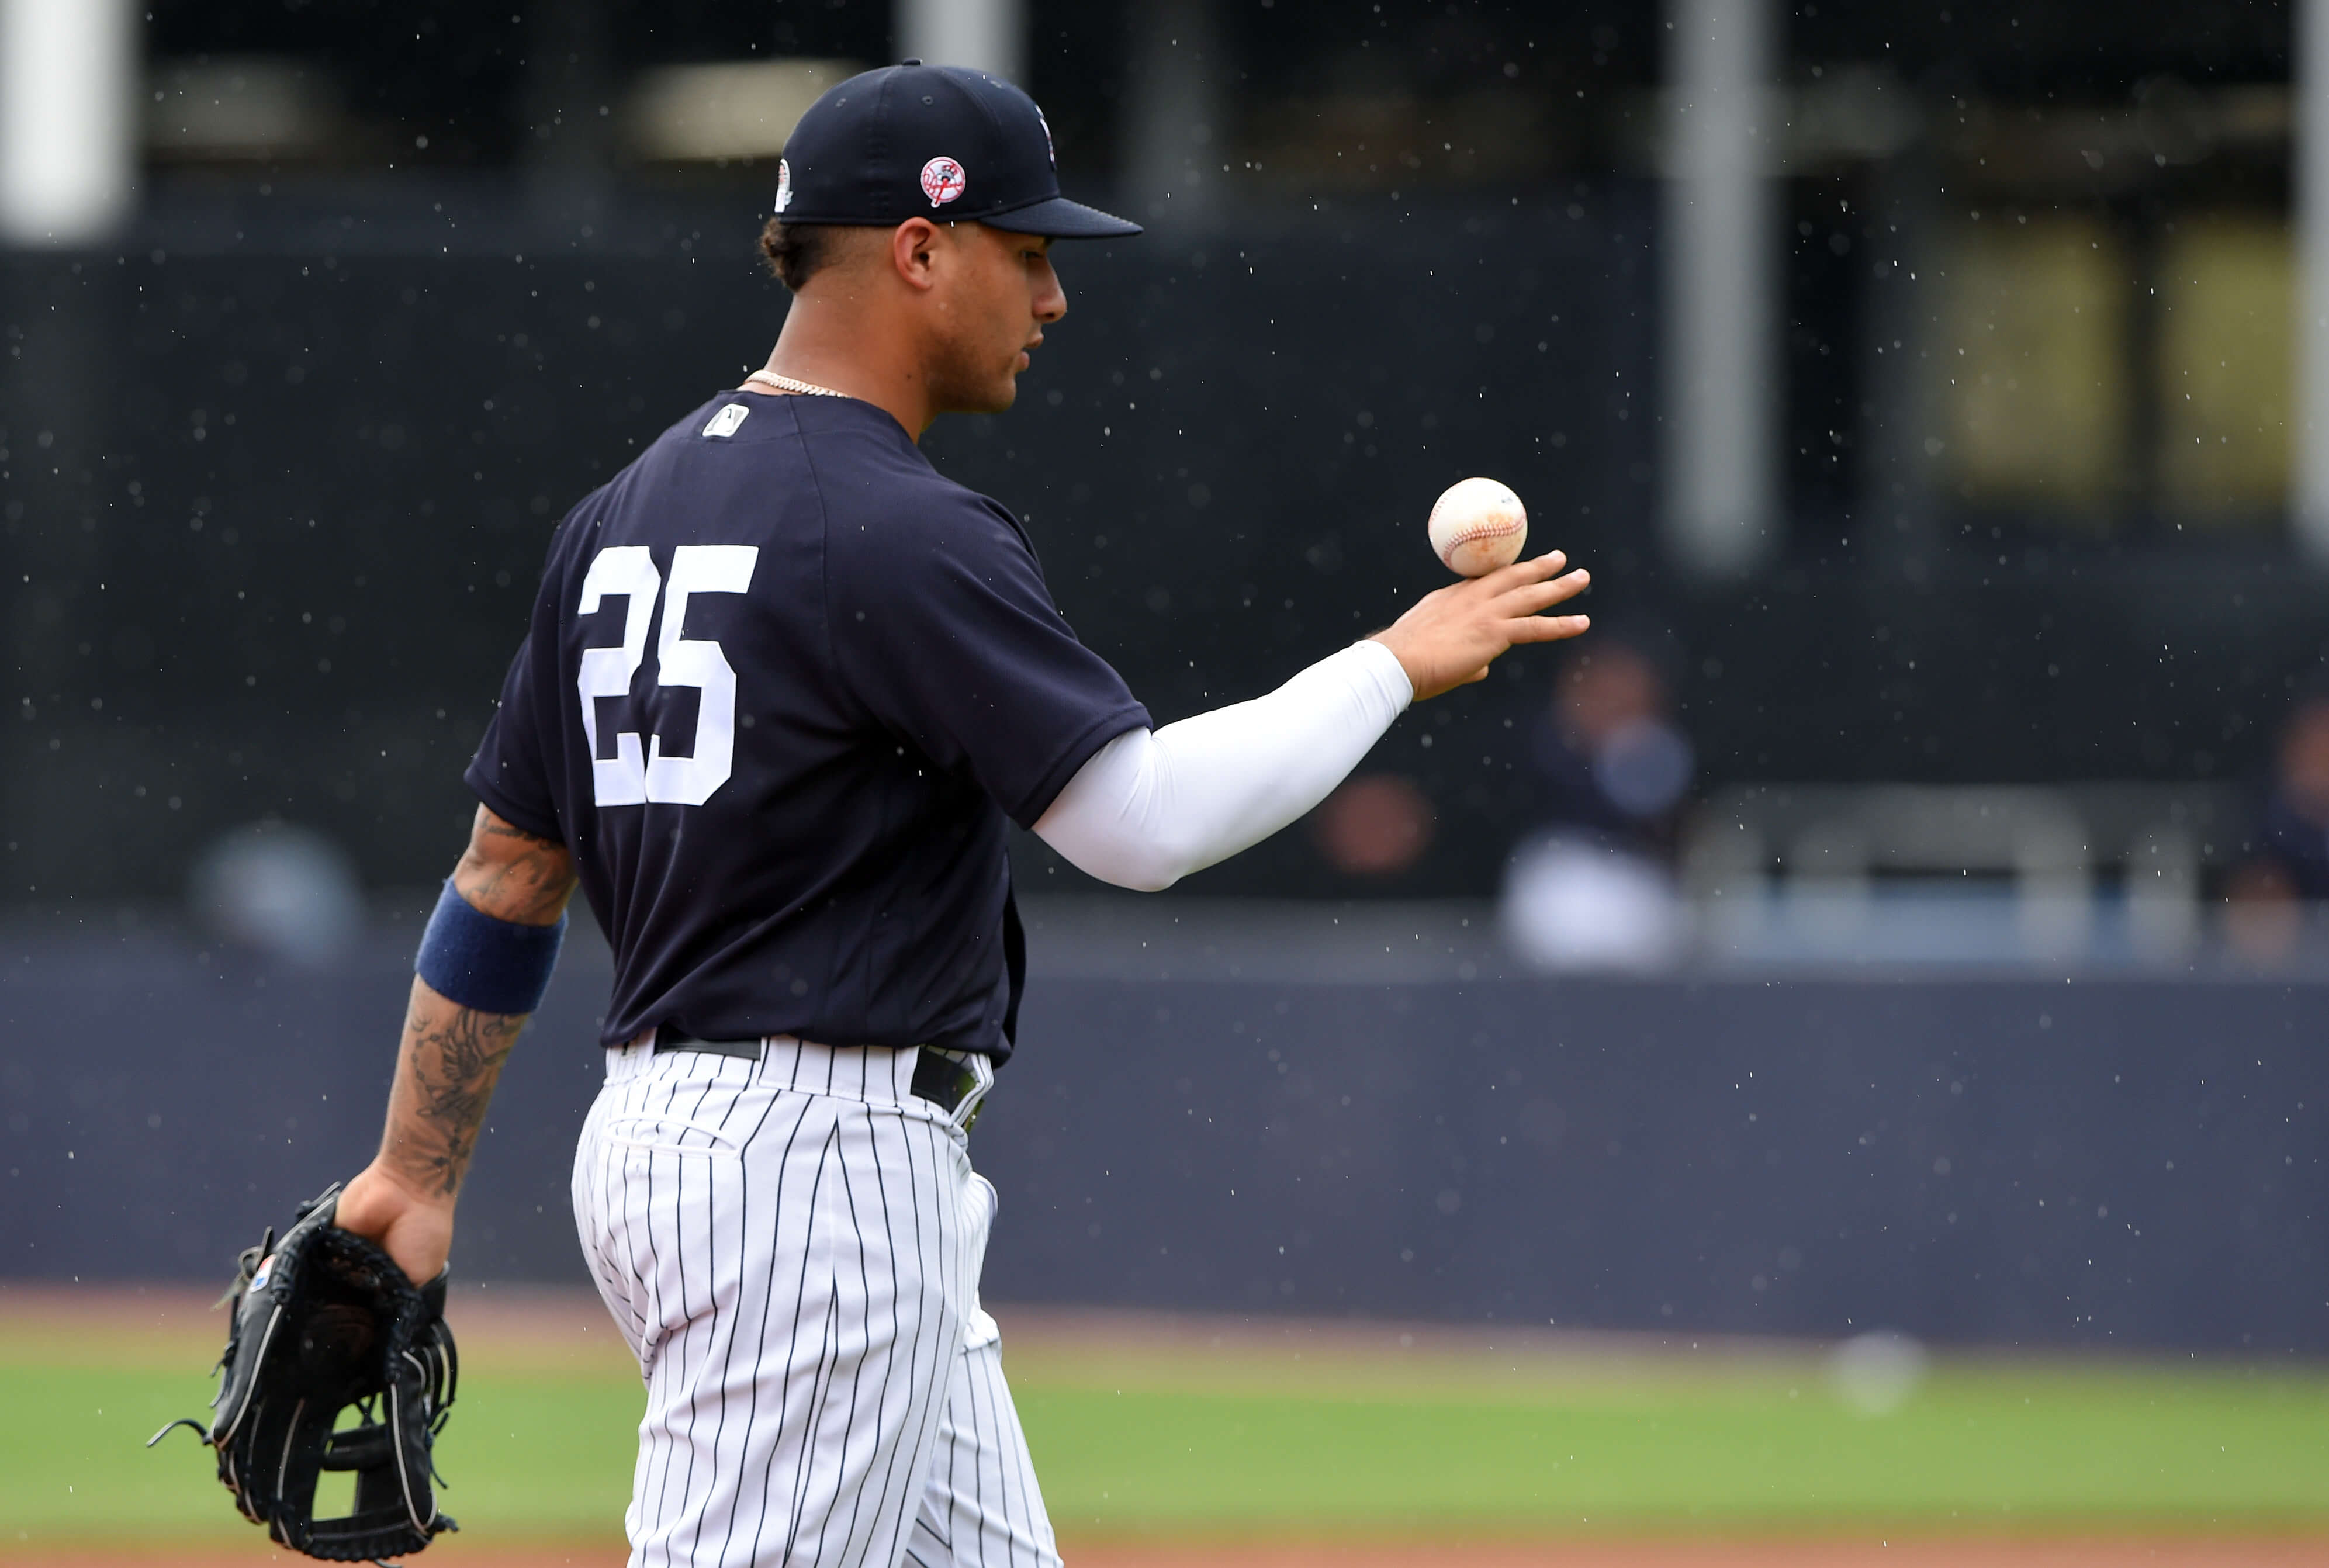 New York Yankees, Gleyber Torres